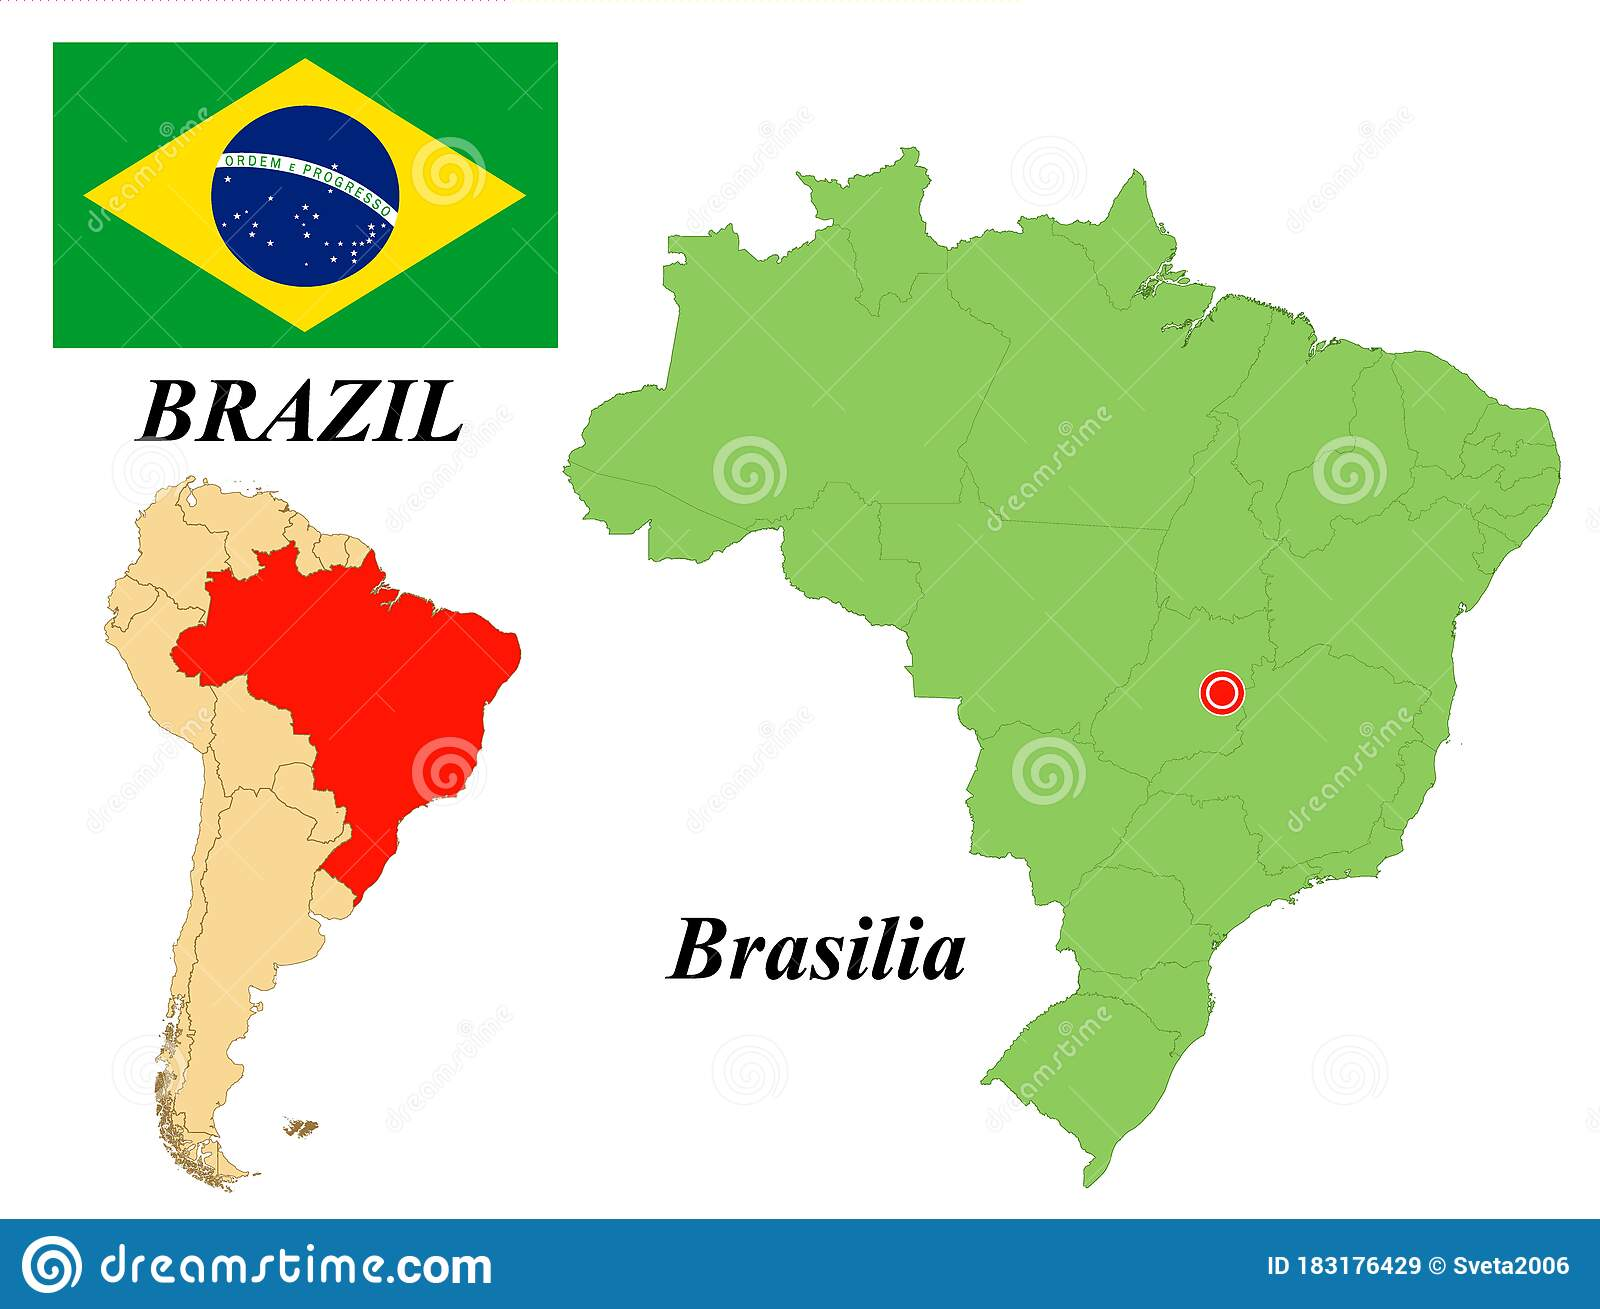 Picture of: Flag Map Capital Of Brazil Stock Vector Illustration Of News 183176429